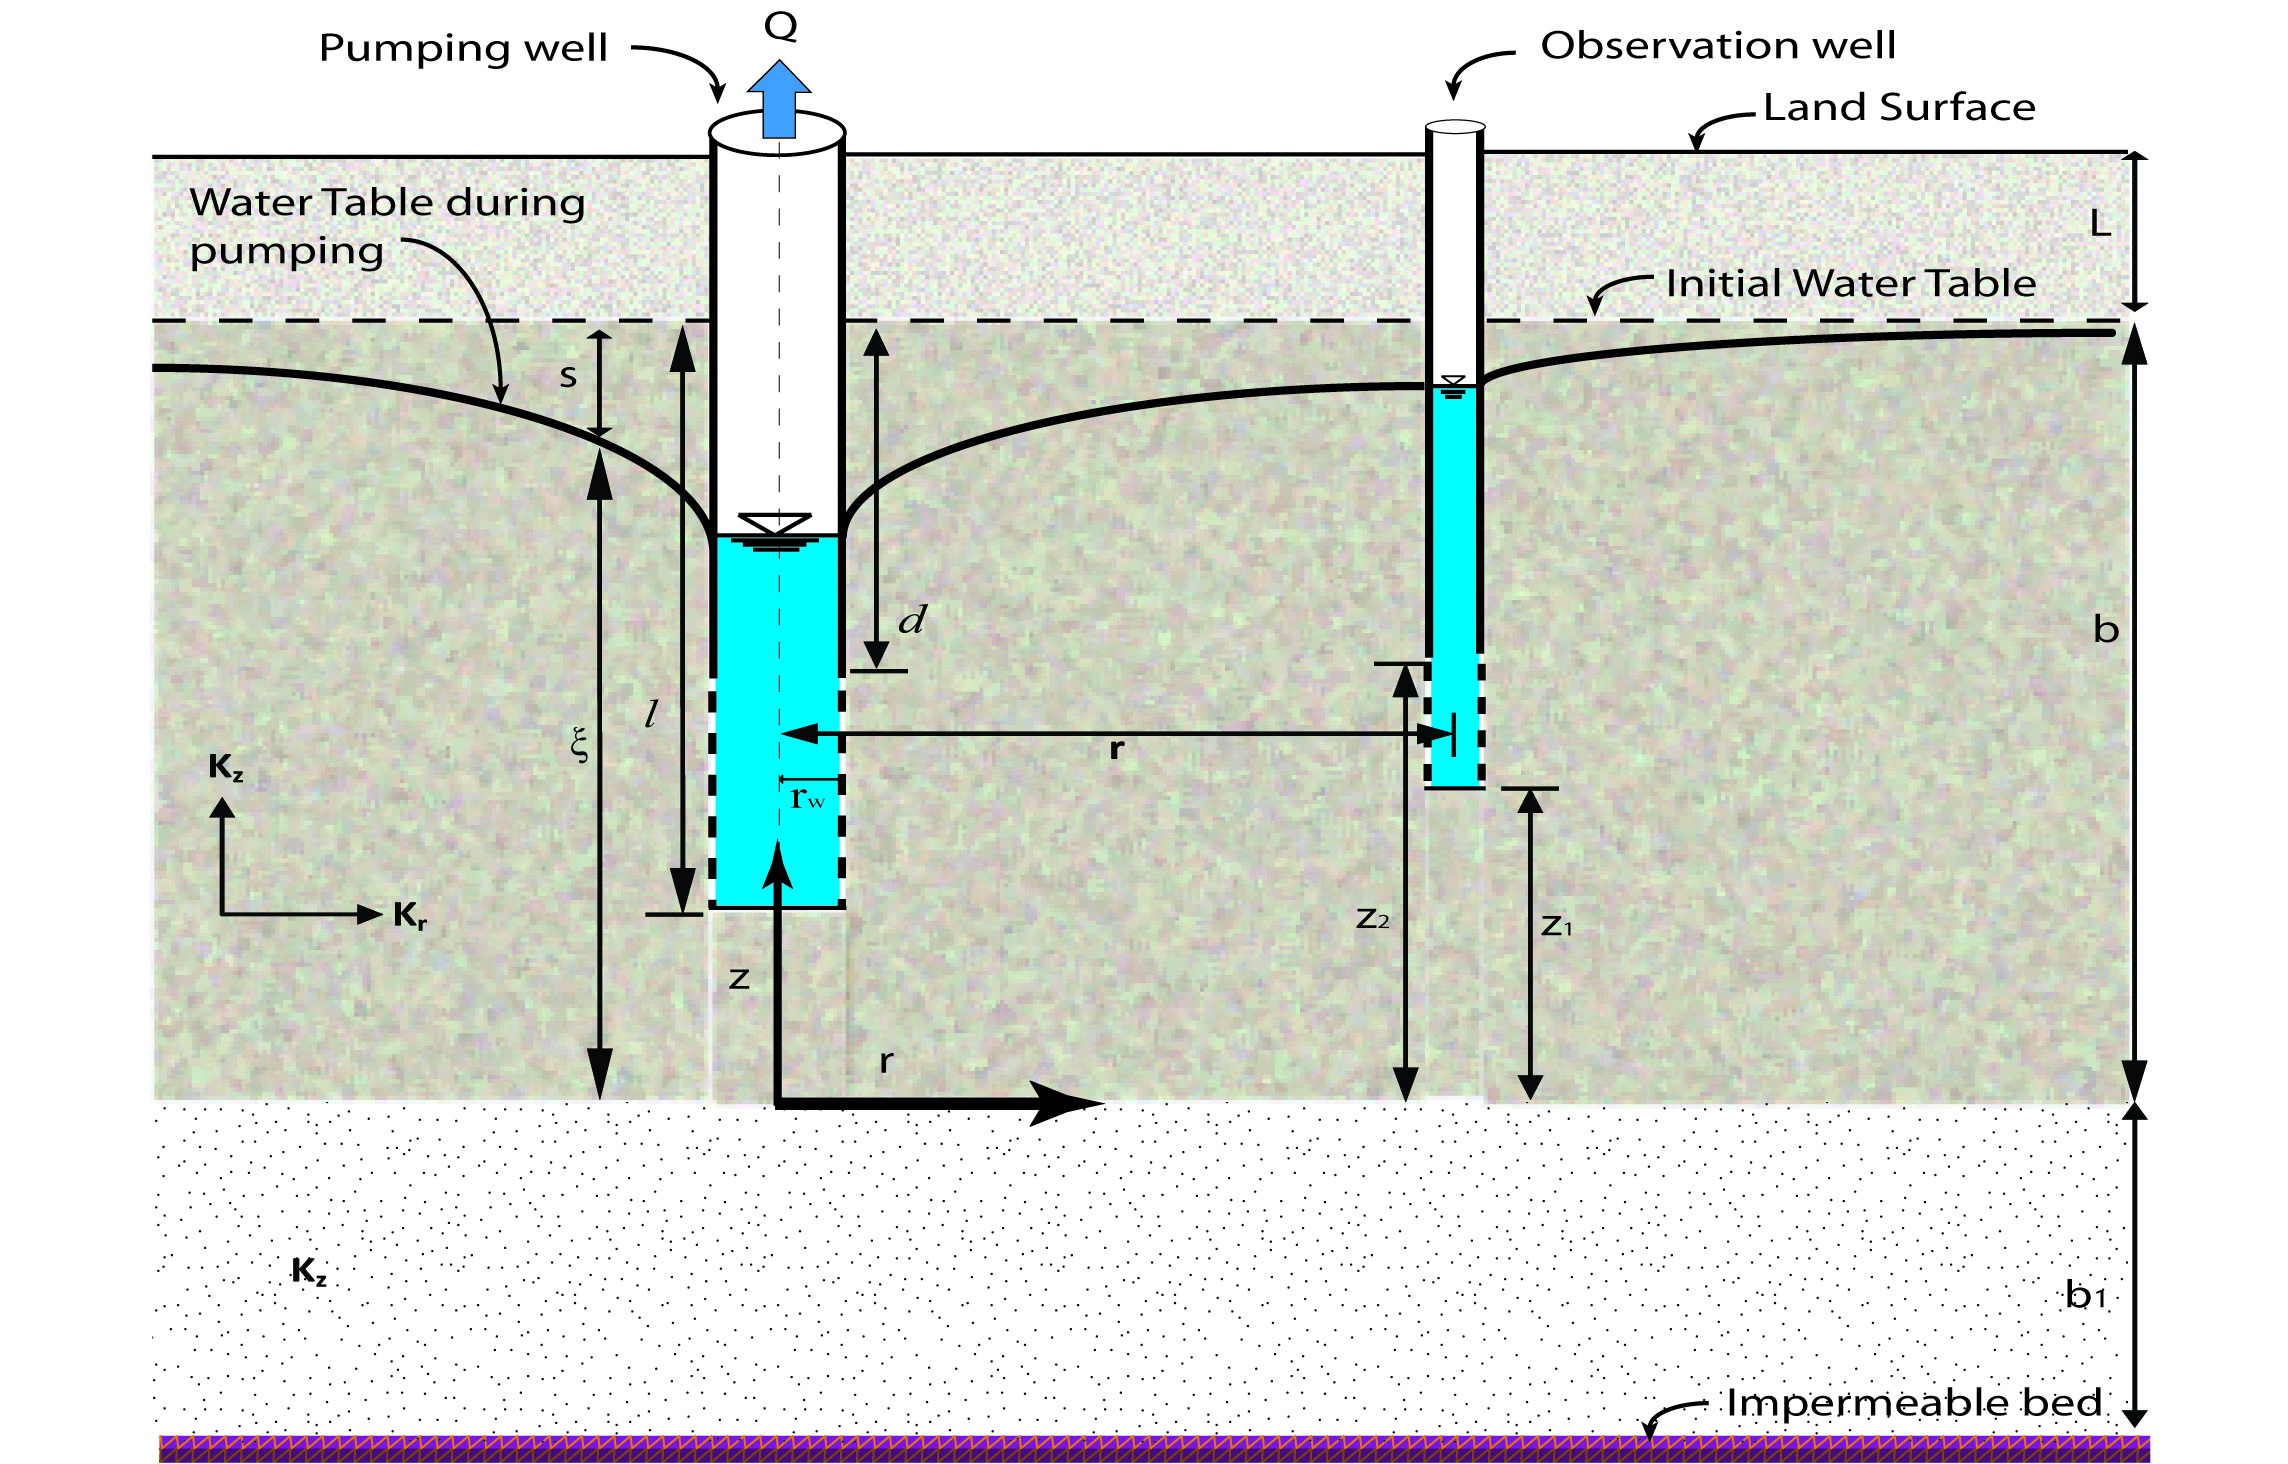 Schematic of leaky unconfined Aquifer